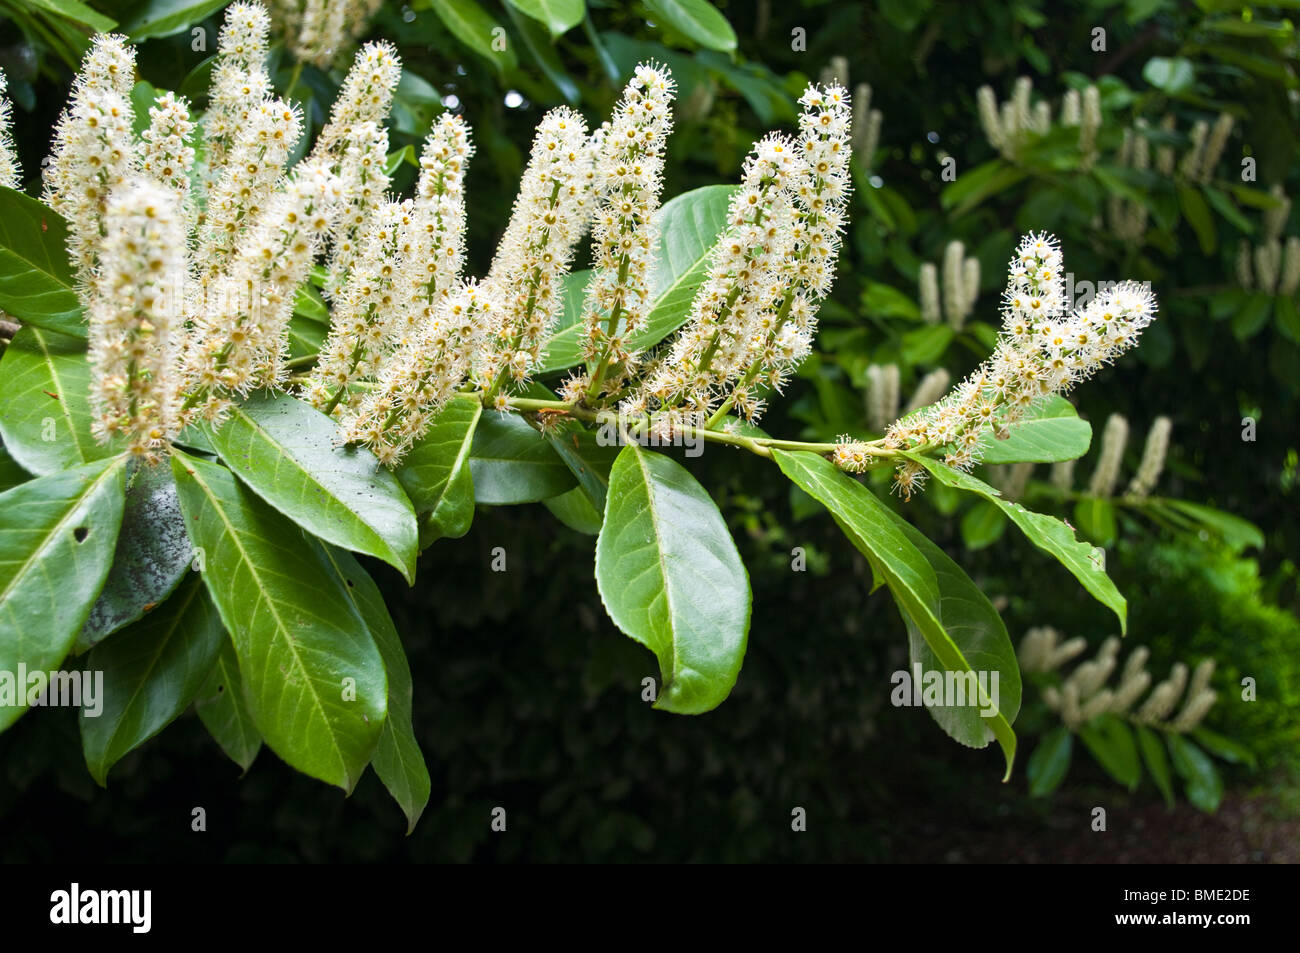 flowers of the cherry laurel prunus laurocerasus stock. Black Bedroom Furniture Sets. Home Design Ideas